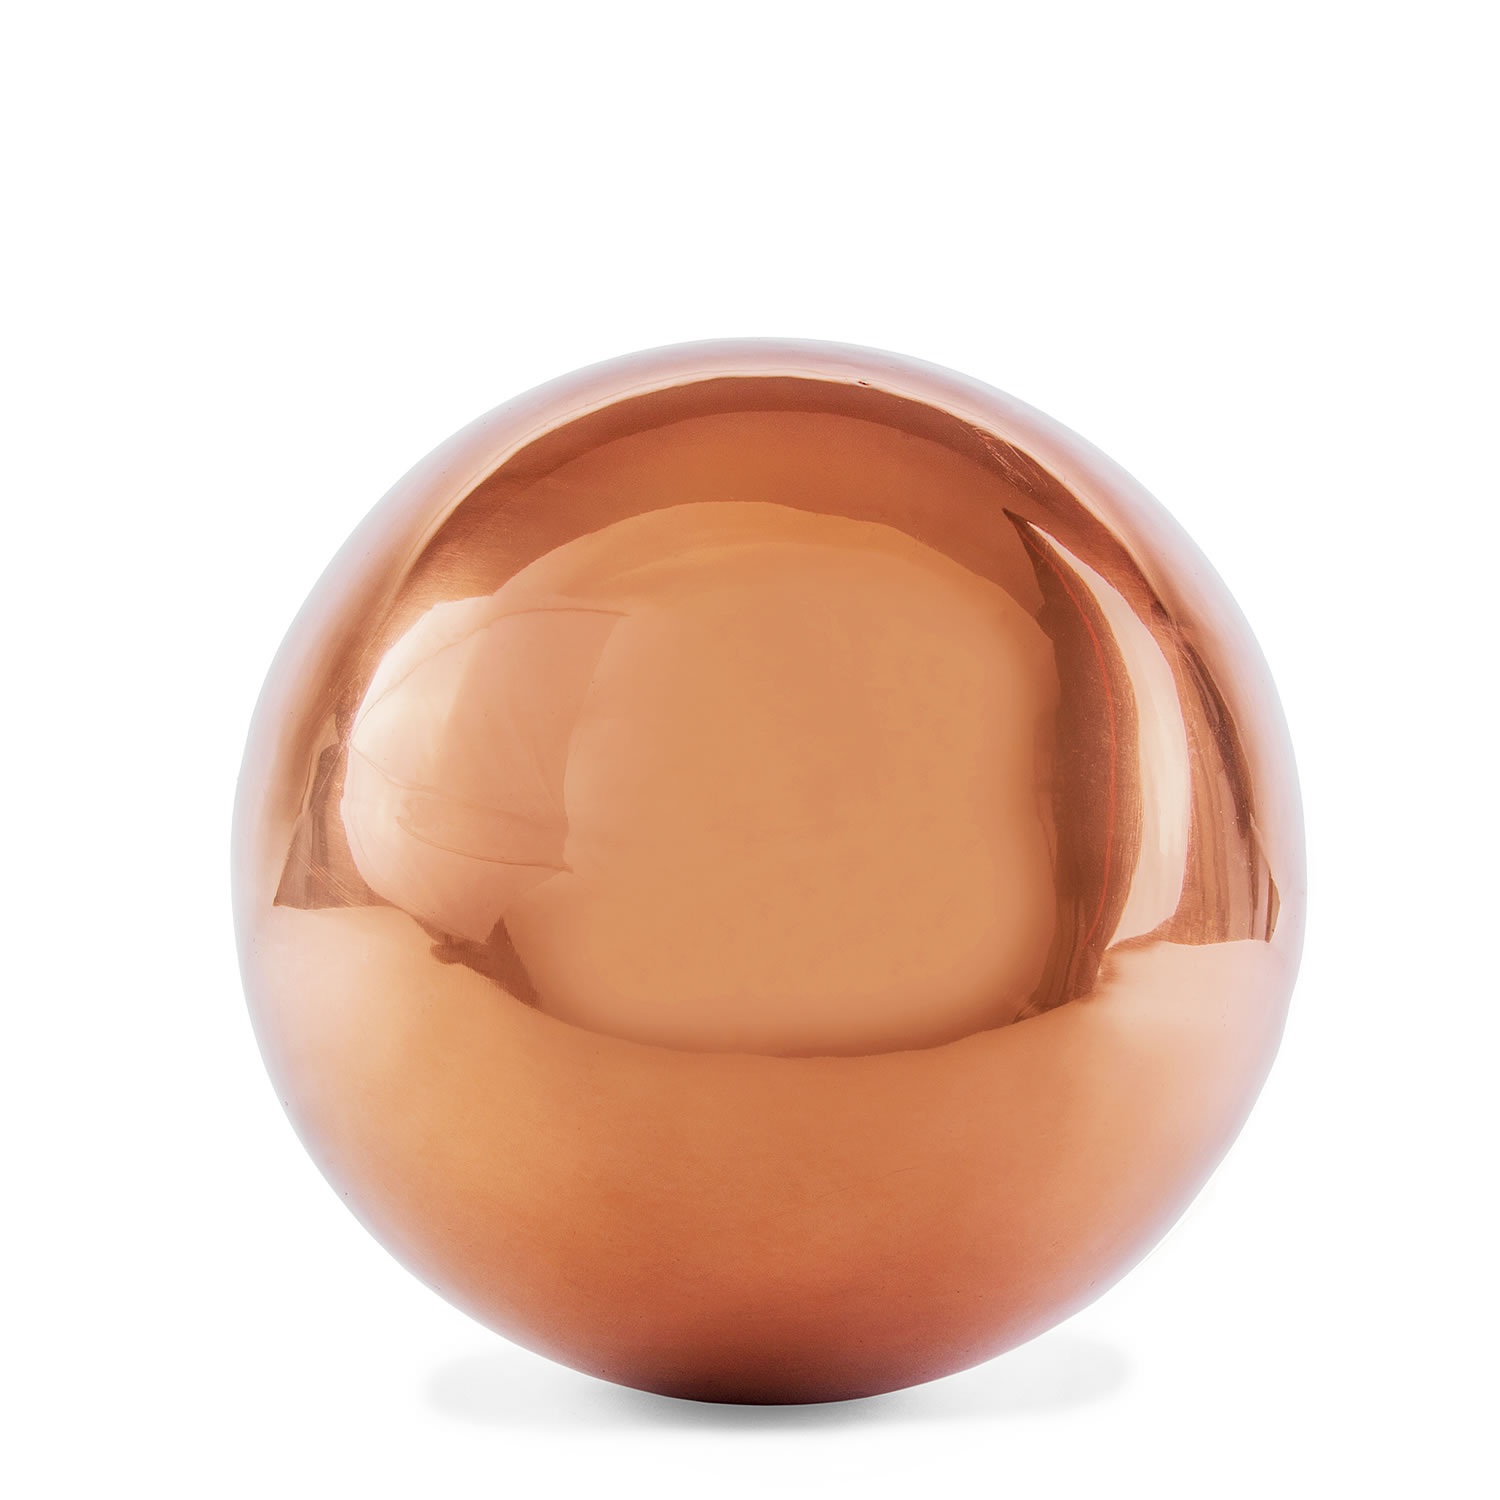 Polished Copper Stainless Steel 9cm Garden Sphere Gazing